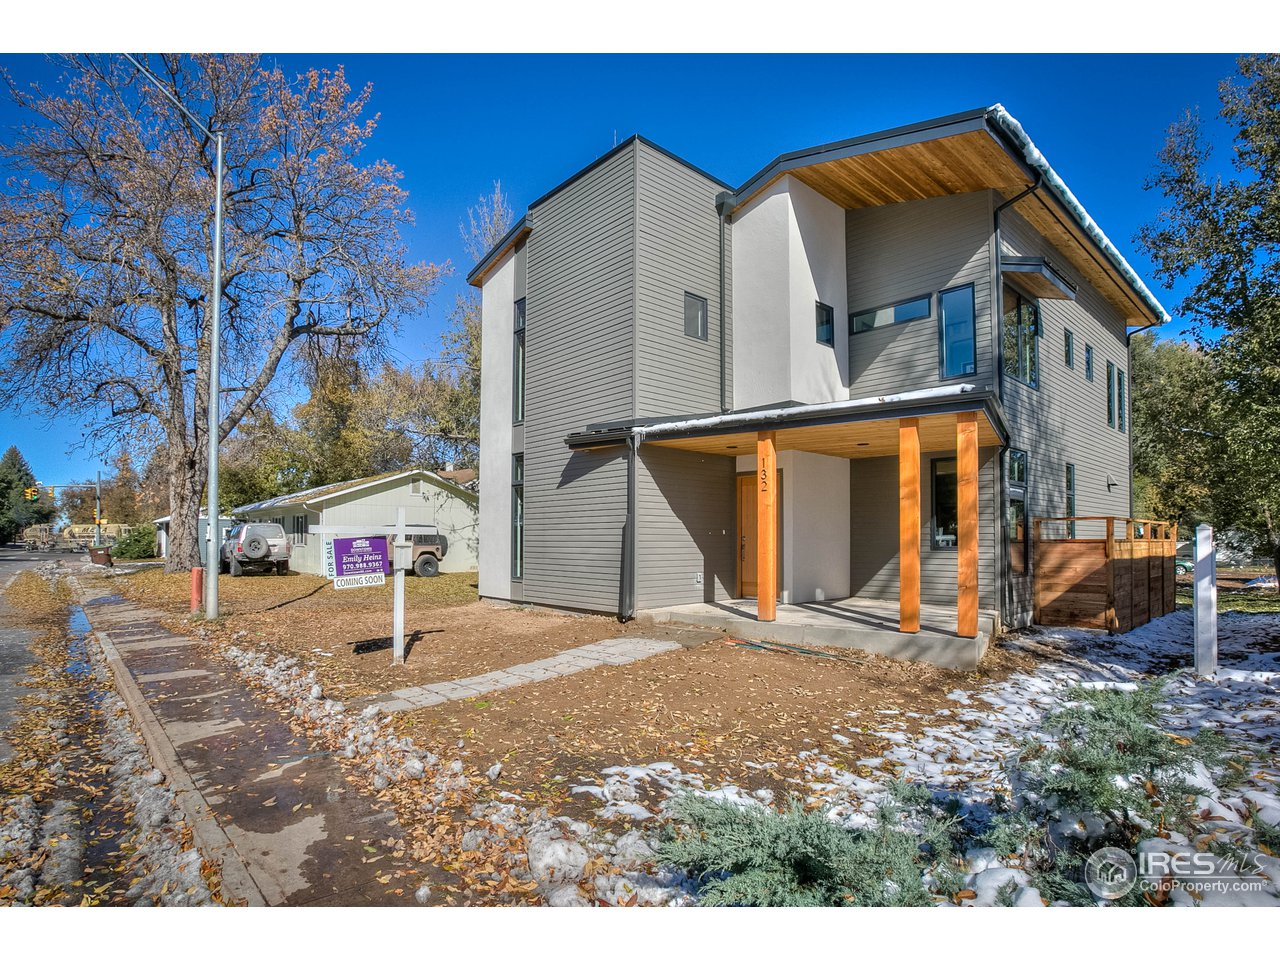 132 N Shields St, Fort Collins CO 80521